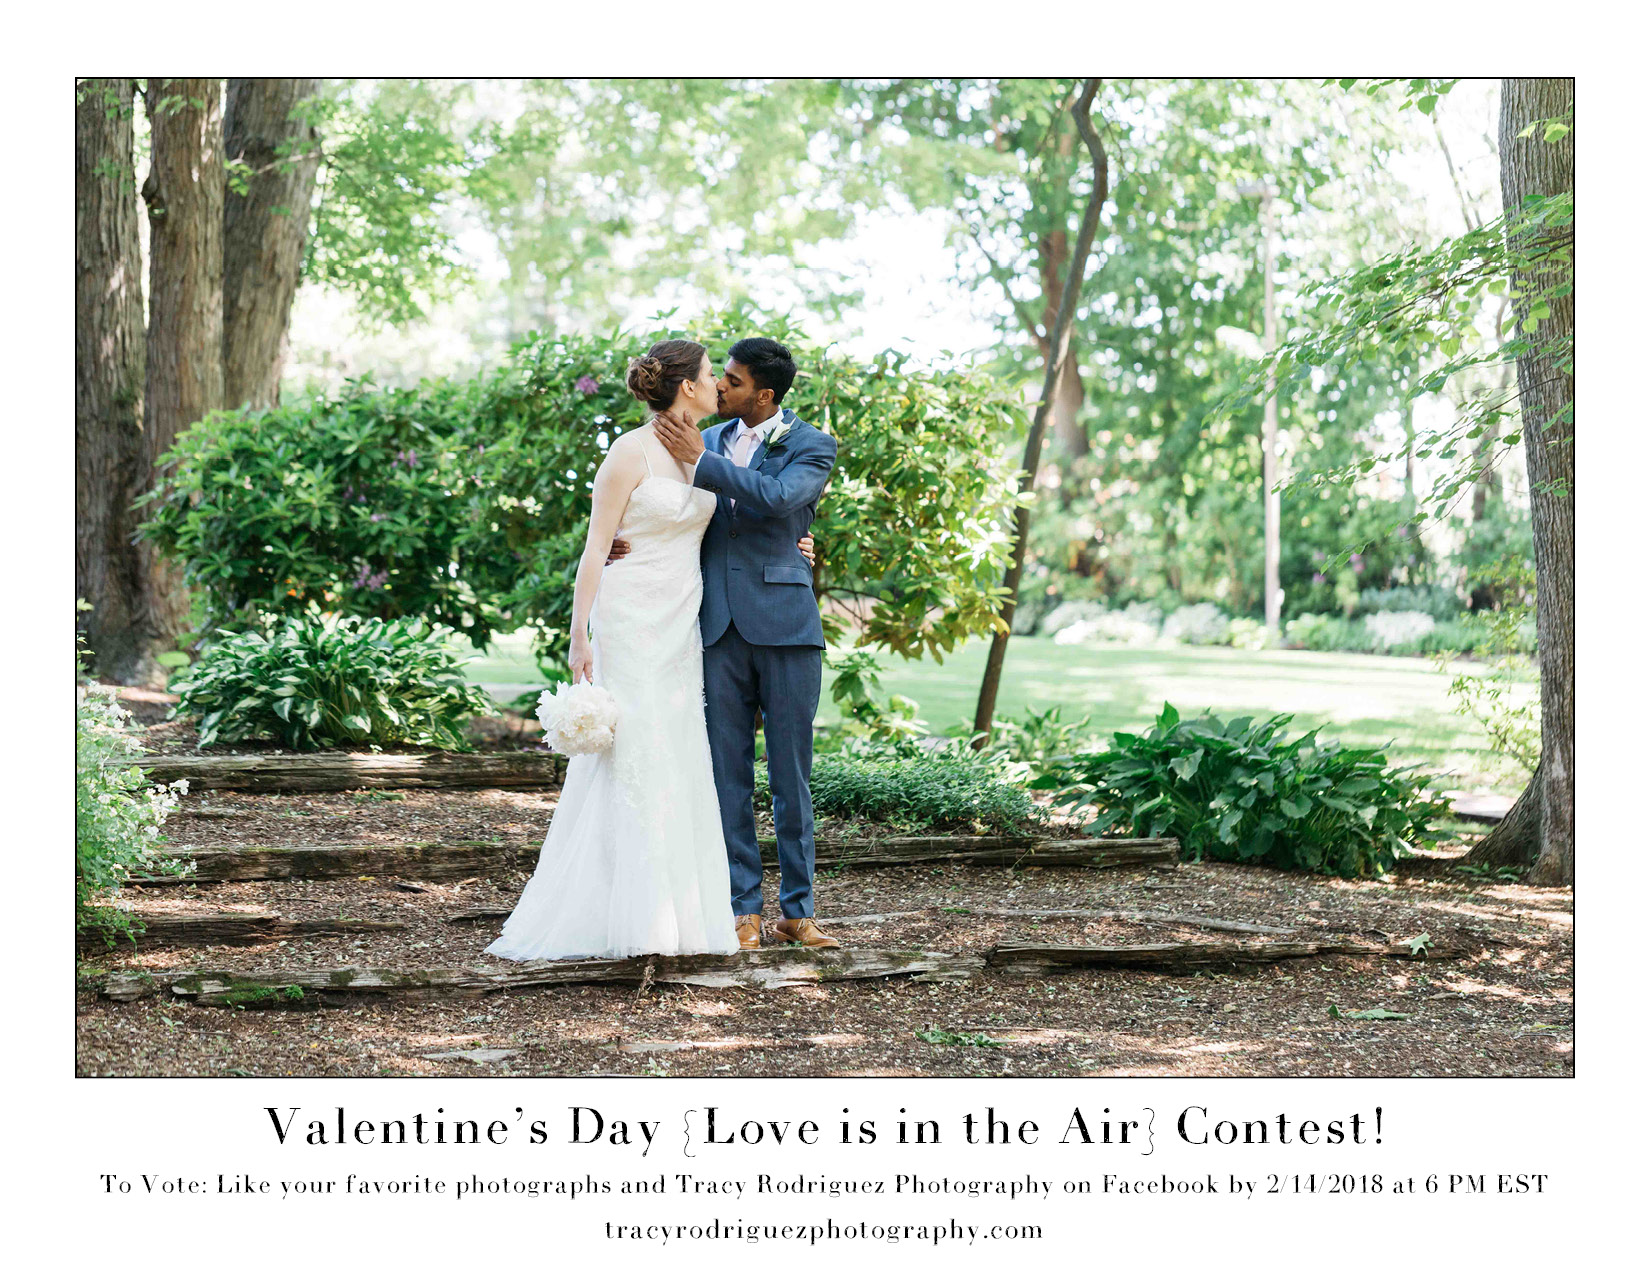 2018 Tracy Rodriguez Photography Valentine's Day Promo2.jpg